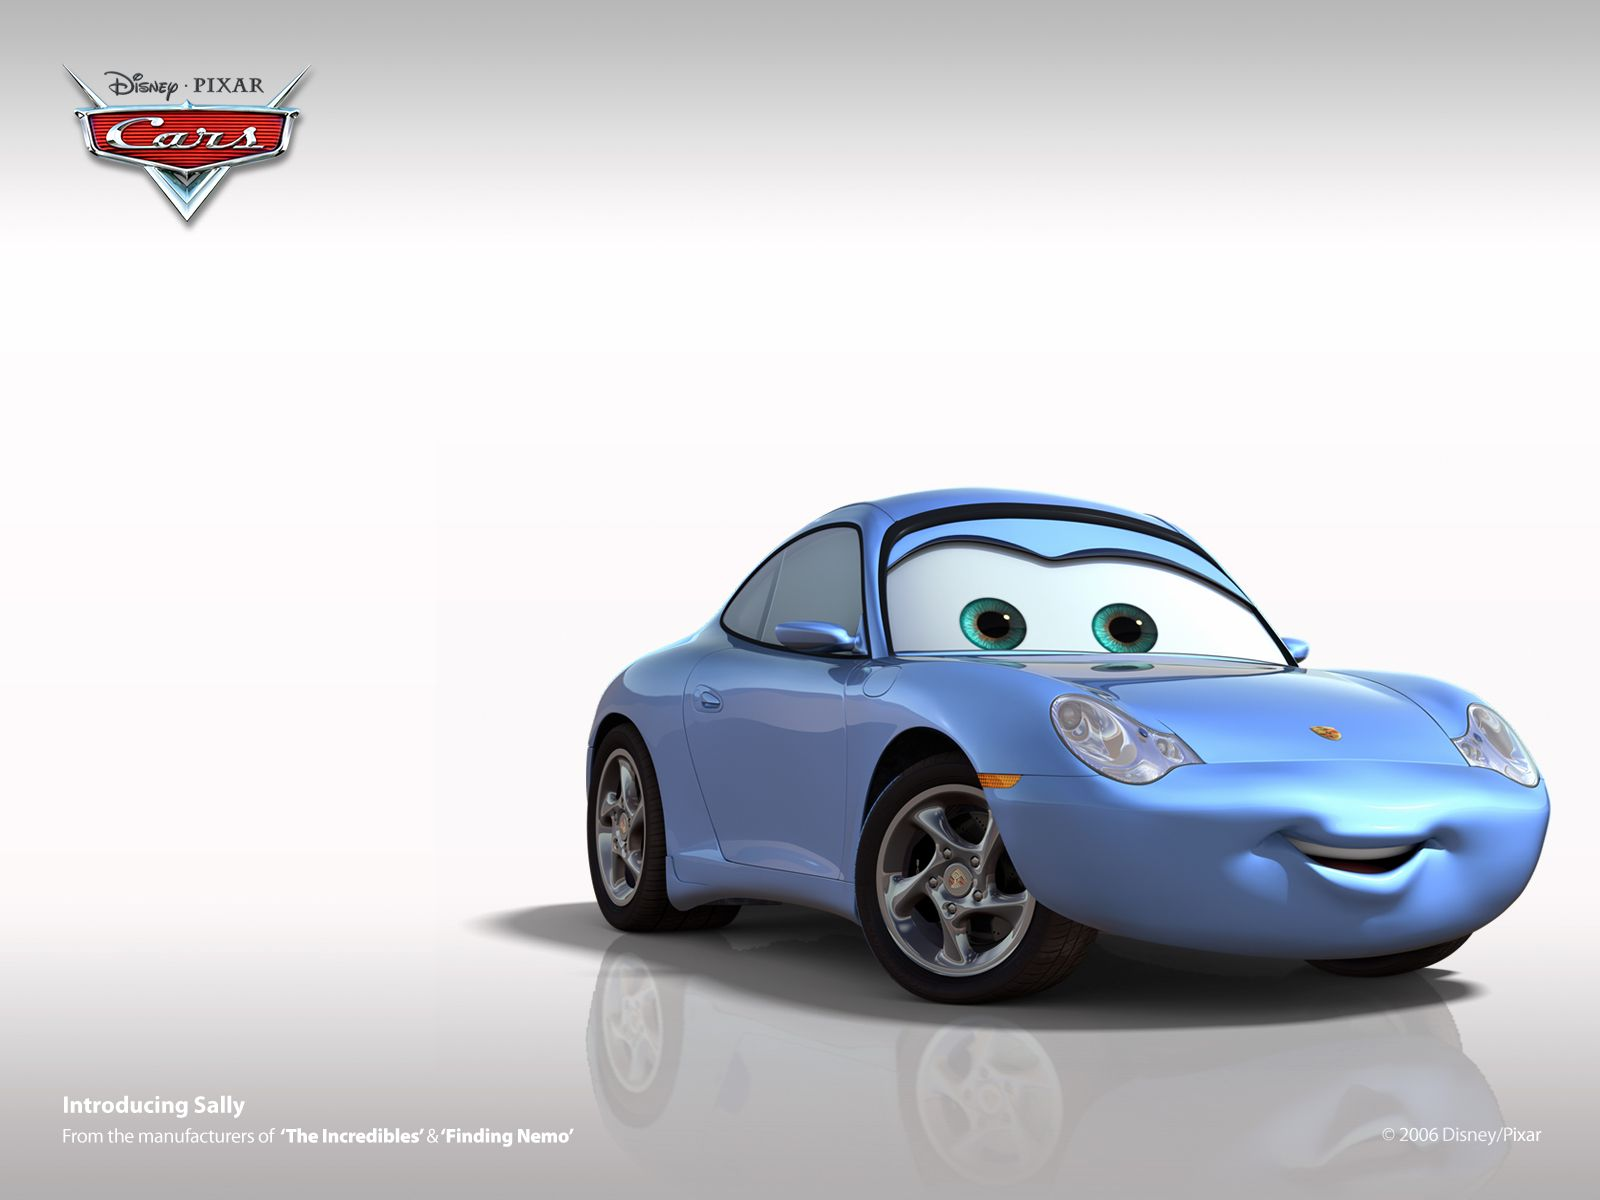 disney cars images free disney pixar cars characters projects